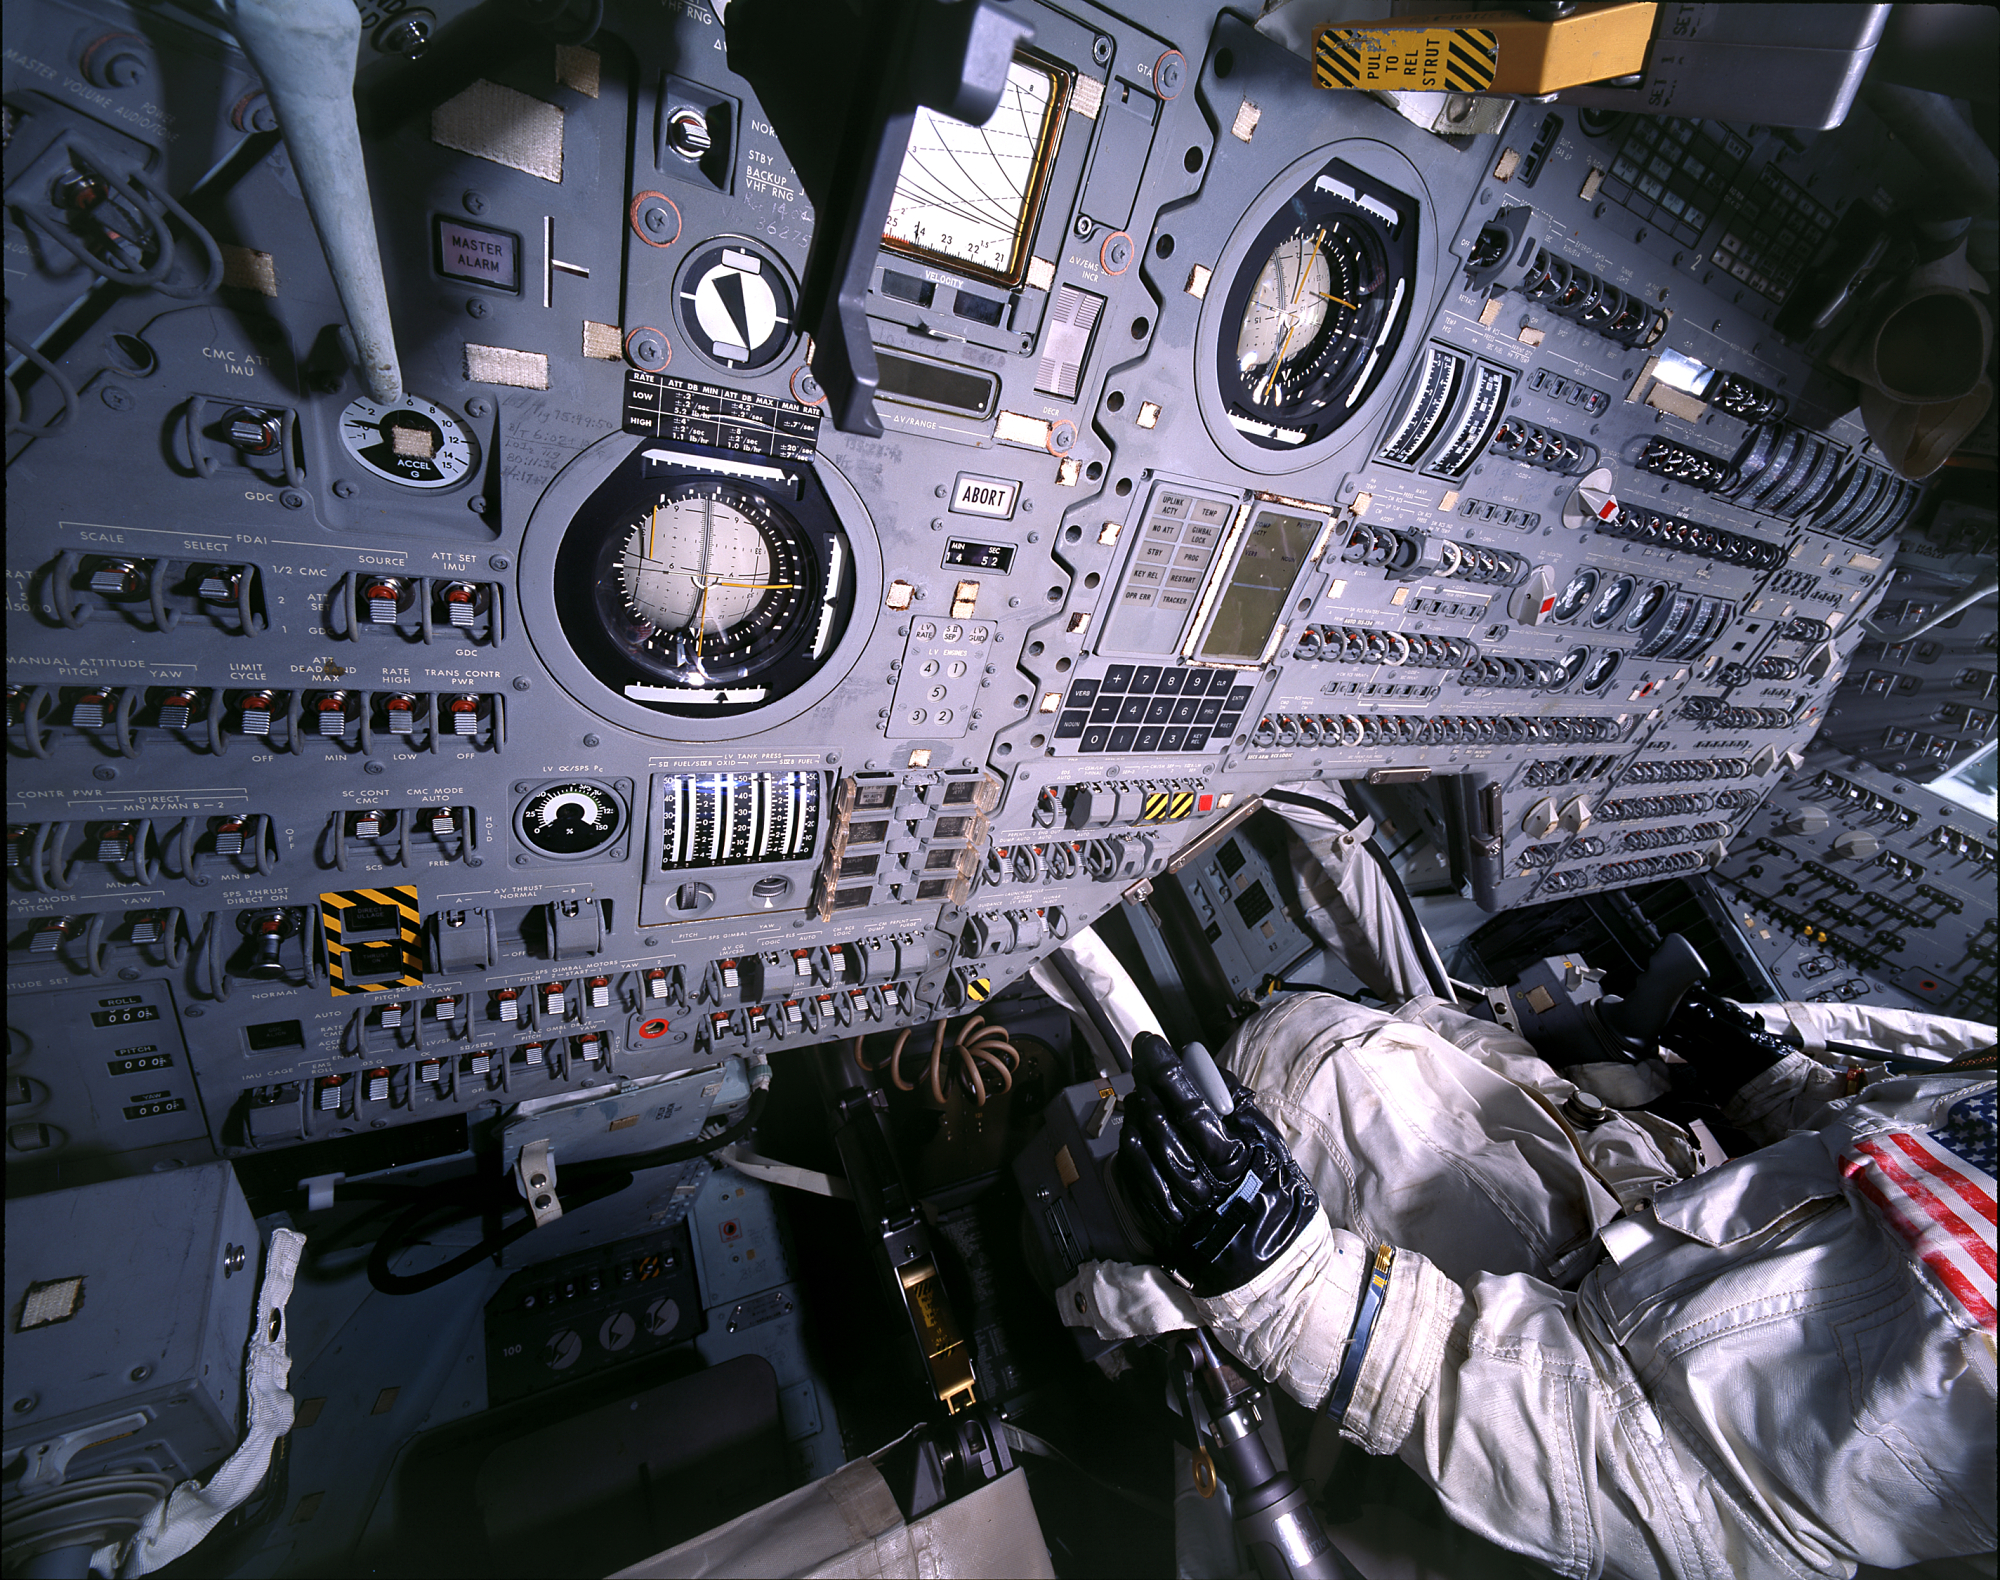 Close up of a control panel with innumerable buttons and switches. On the right mannequin of an astronaut sits, demonstrating the cramped conditions on board and the complexity of the spacecraft.